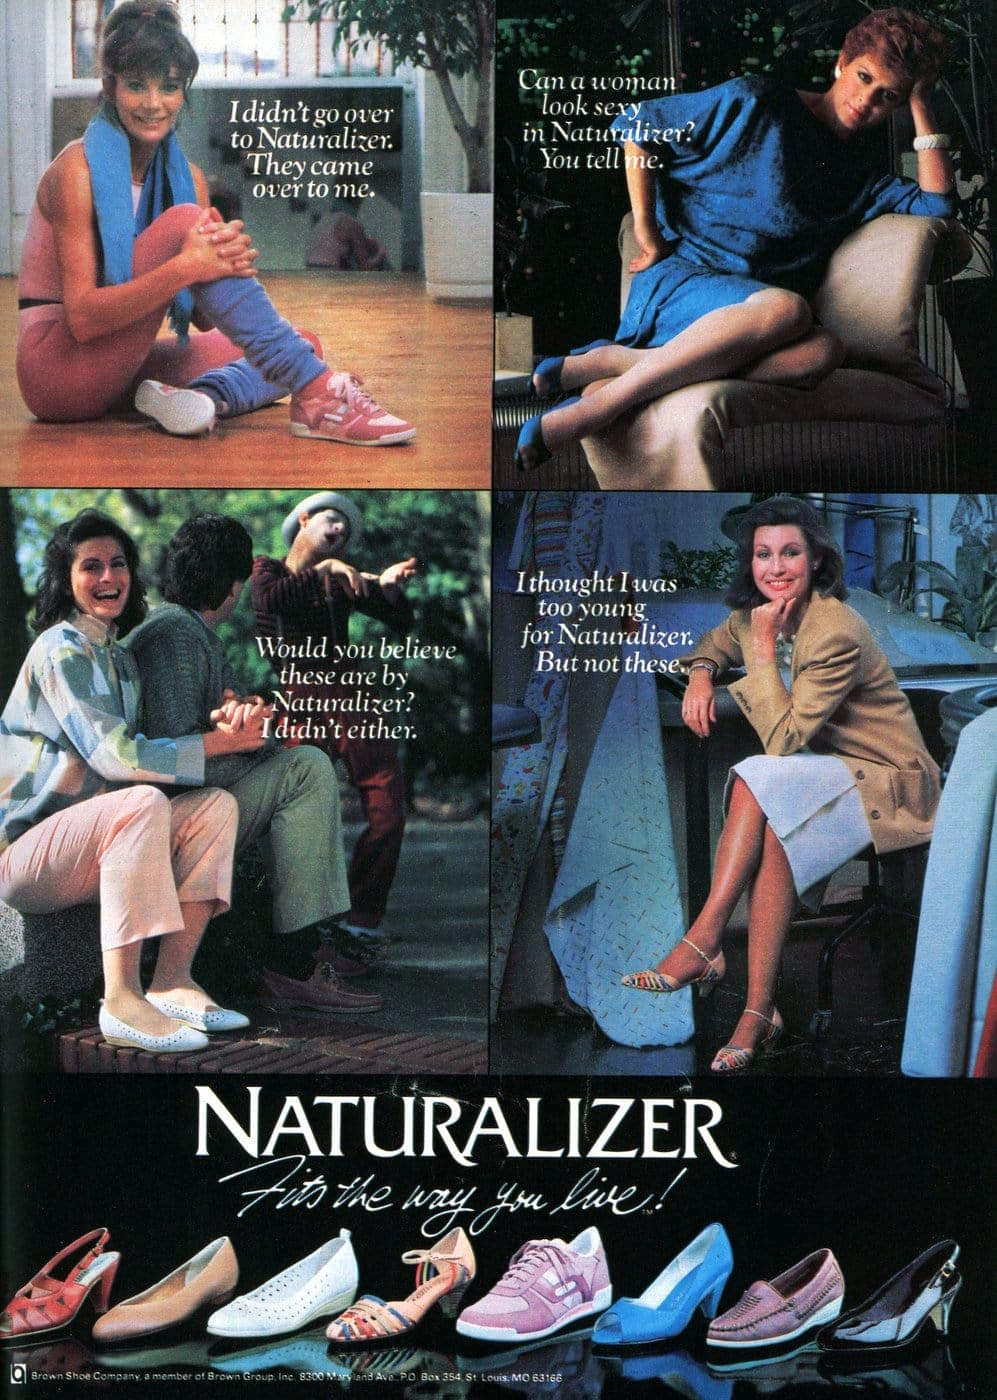 Vintage 80s Naturalizer shoes for women - heels and flats from 1985